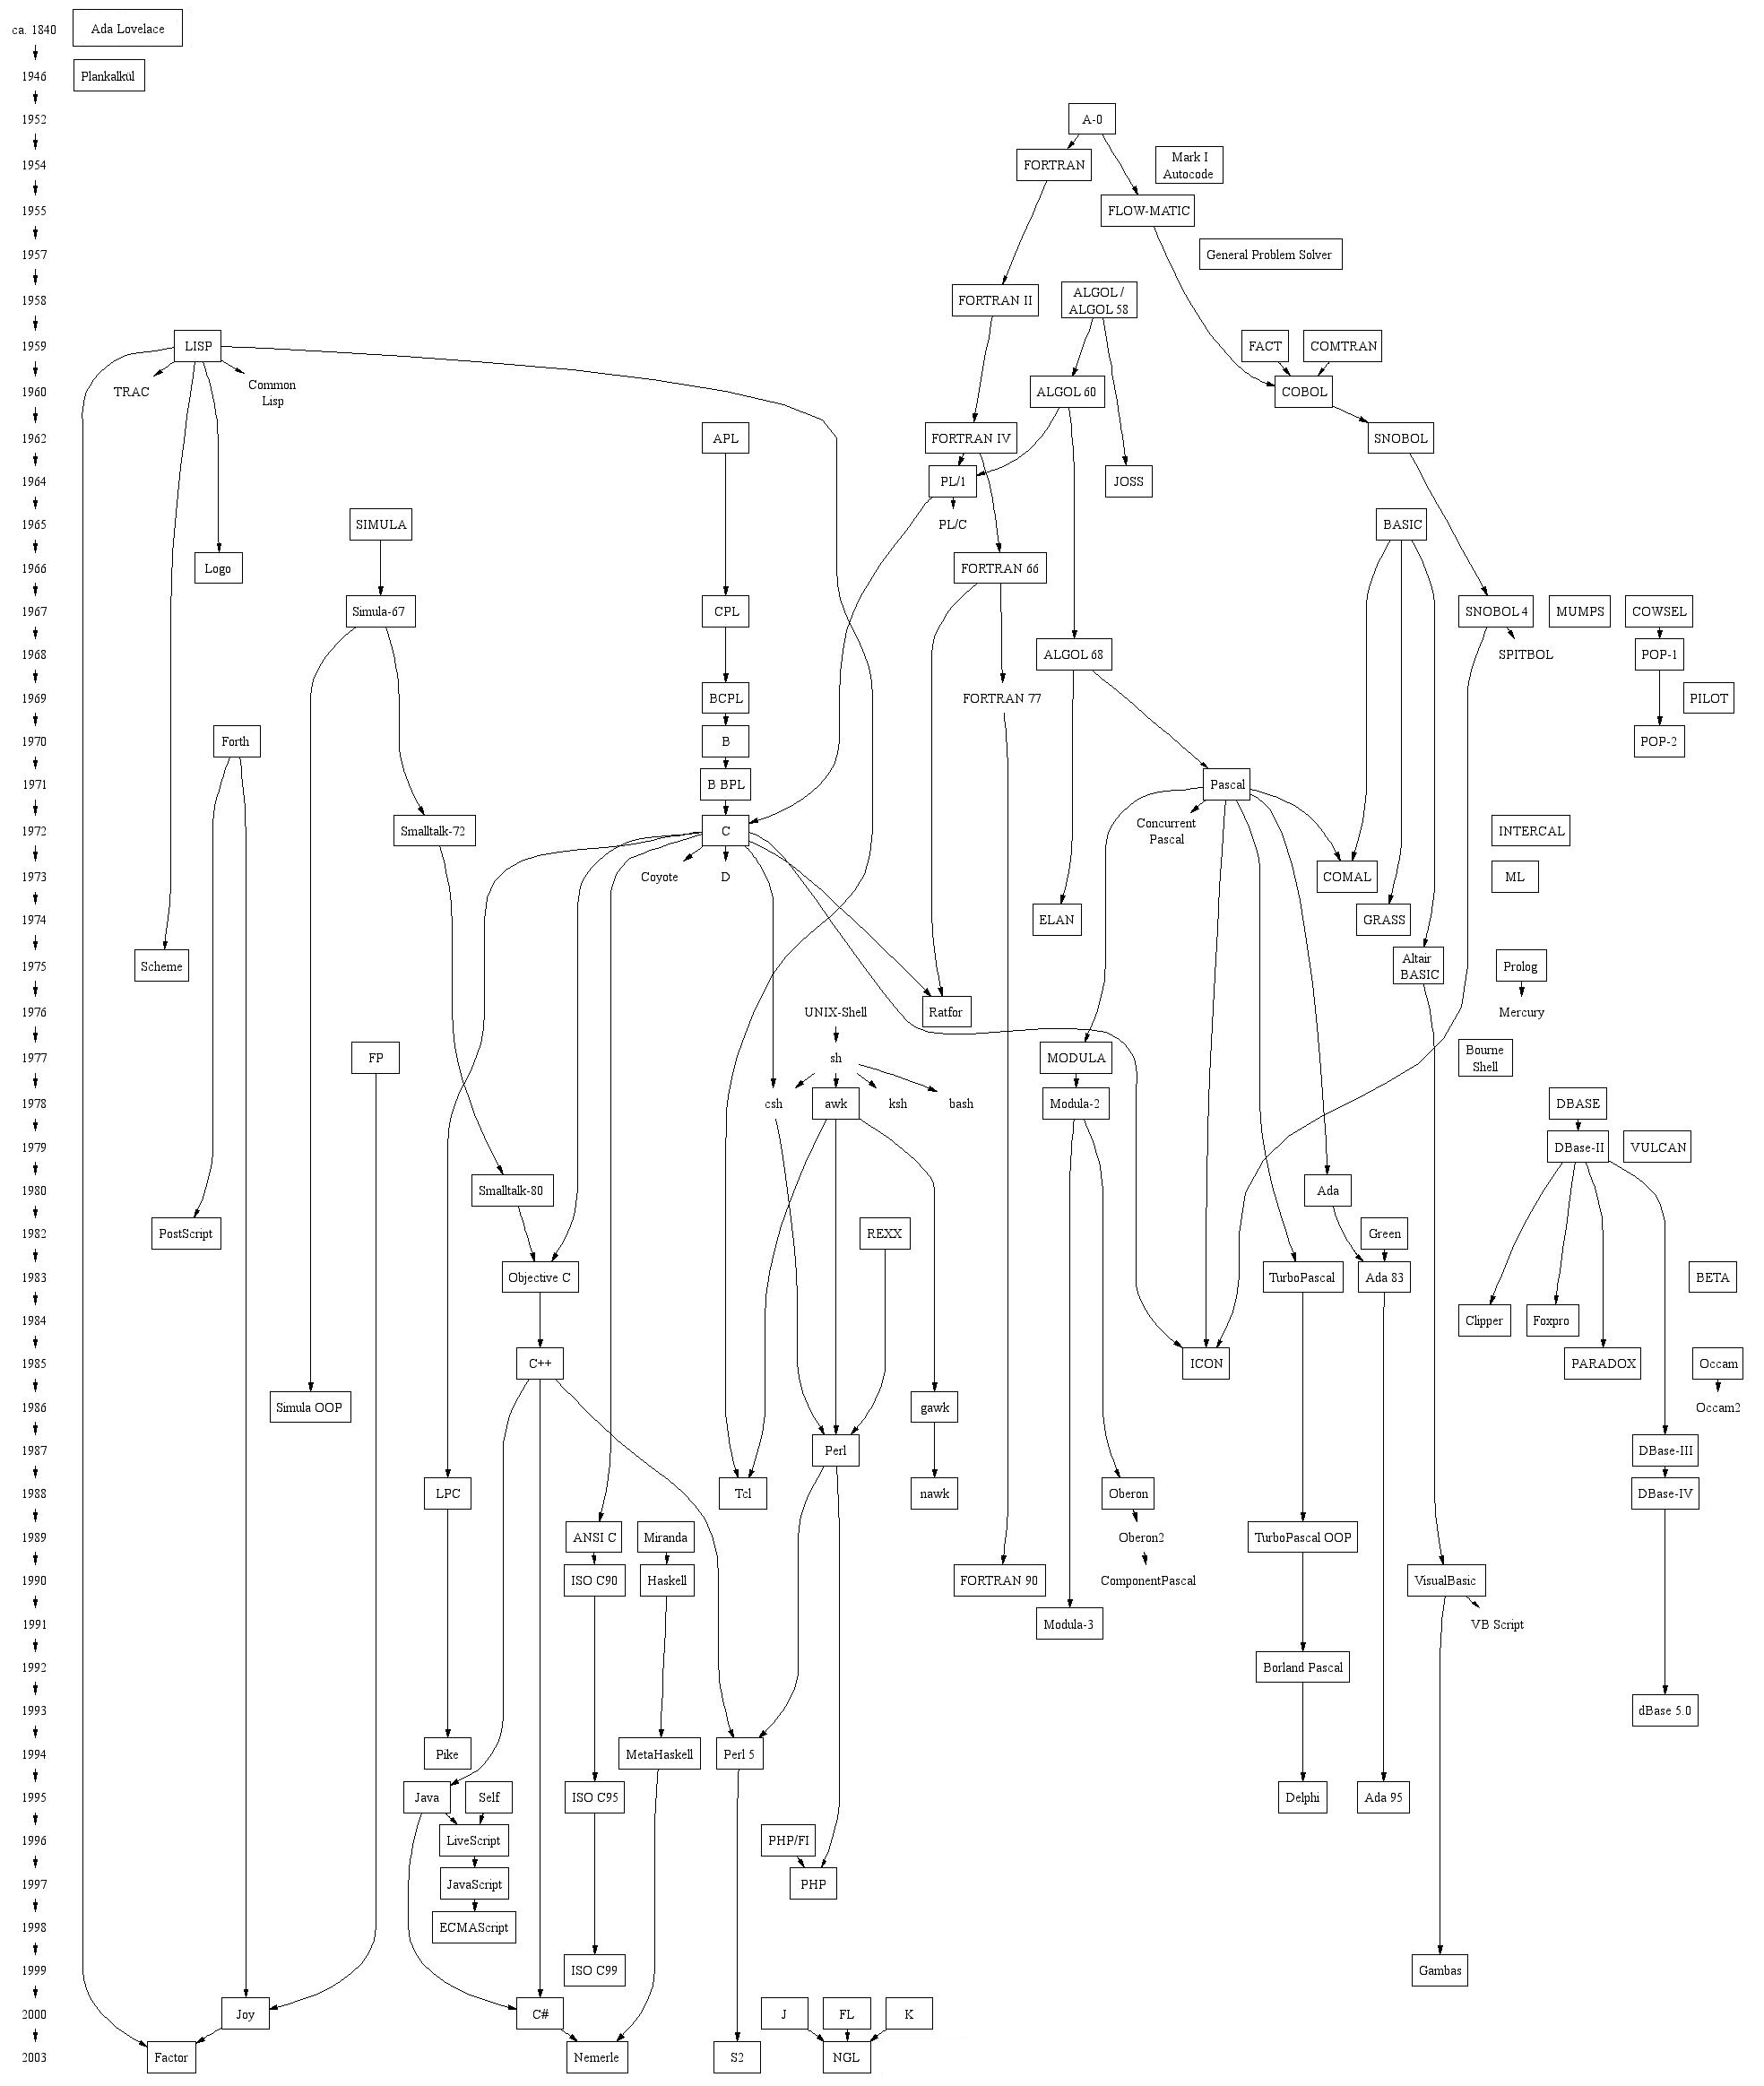 Timeline of programming languages